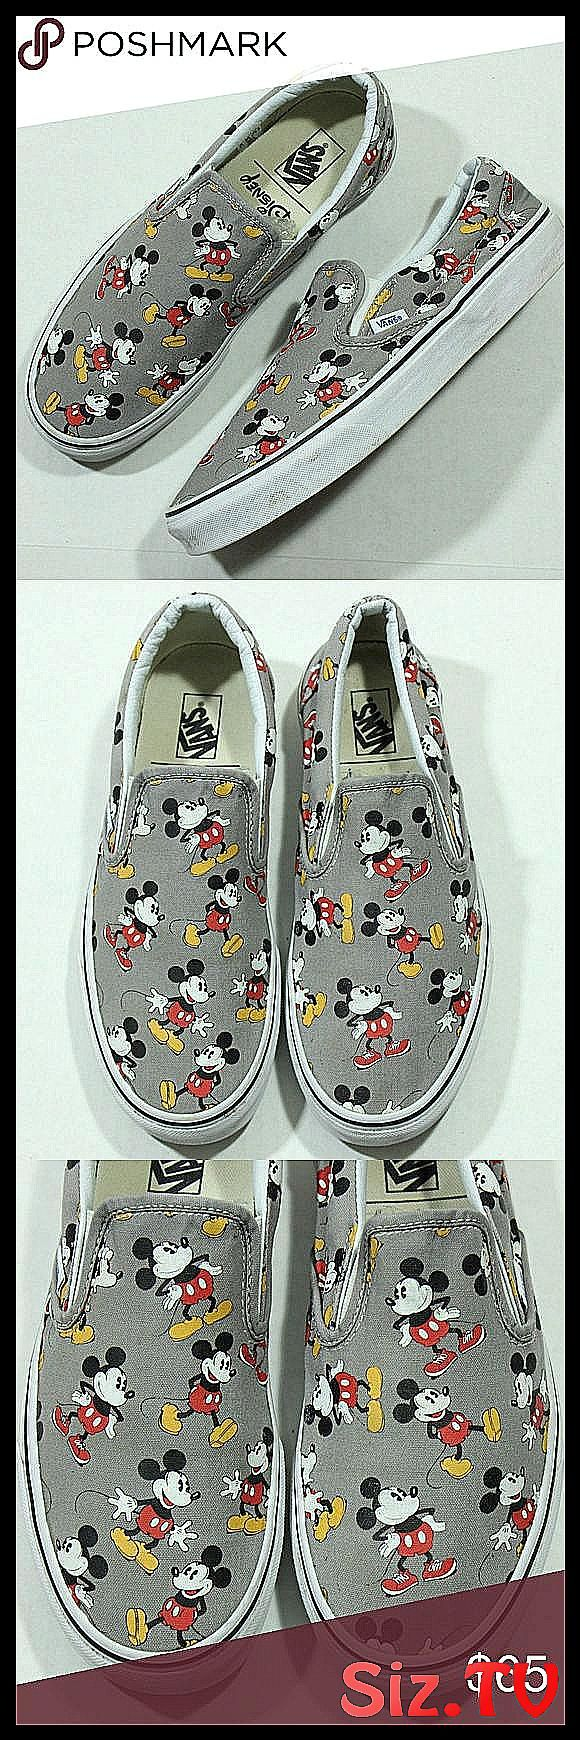 Vans Disney Mickey Mouse Slip On Shoes Sneakers Vans Disney Mickey Mouse Slip On   Vans Disney Mickey Mouse Slip On Shoes Sneakers Vans Disney Mickey Mouse Slip On Shoes Sneakers SZ 9 5 Mens   11 Women 39 s USED  NO BOX   USED  MIGHT HAVE toe box creasing dirt on the bottom around the shoes needs cleaning scuffs around the shoes heel drag yellowing on the bottom etc   ALL SALES FINAL Disney Shoes Sneakers Vans Disney Mickey Mouse Slip On S